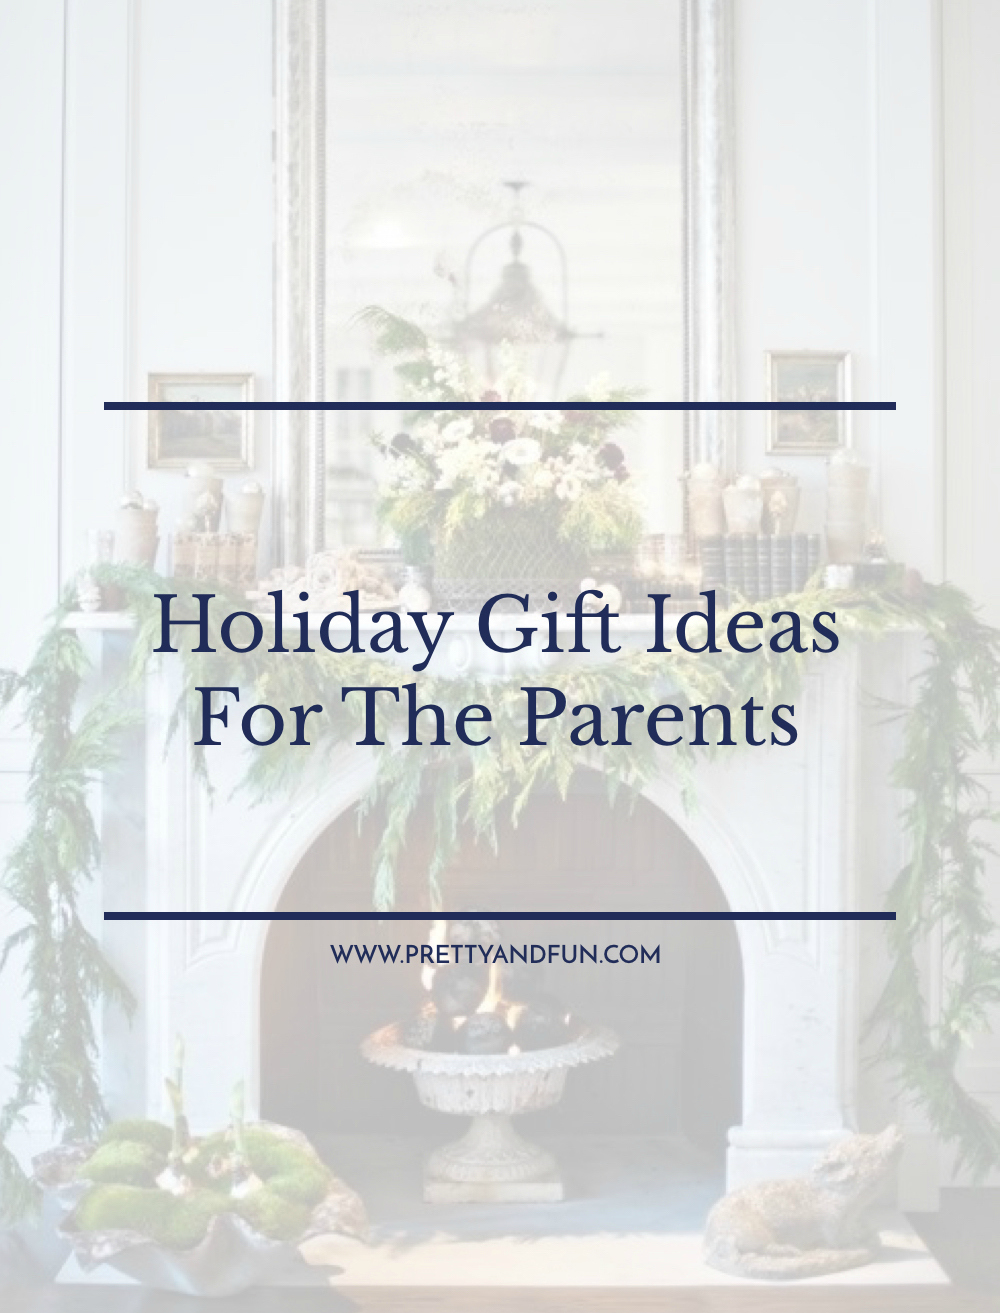 The Best Holiday Gift Ideas for Parents.